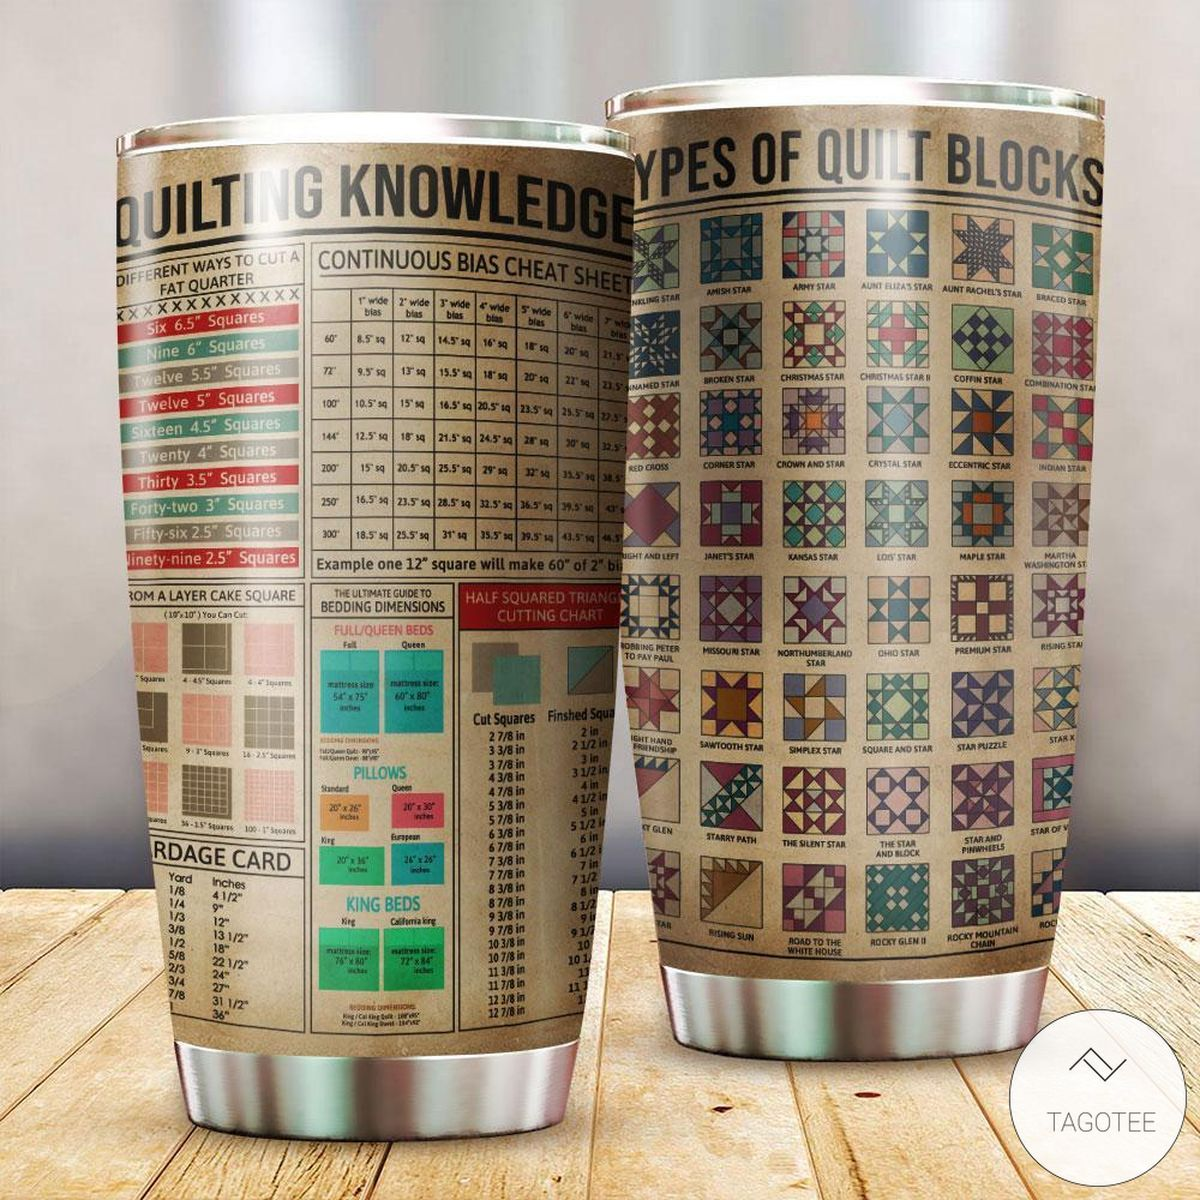 Quilting Knowledge Types Of Quilt Blocks Stainless Steel Tumbler